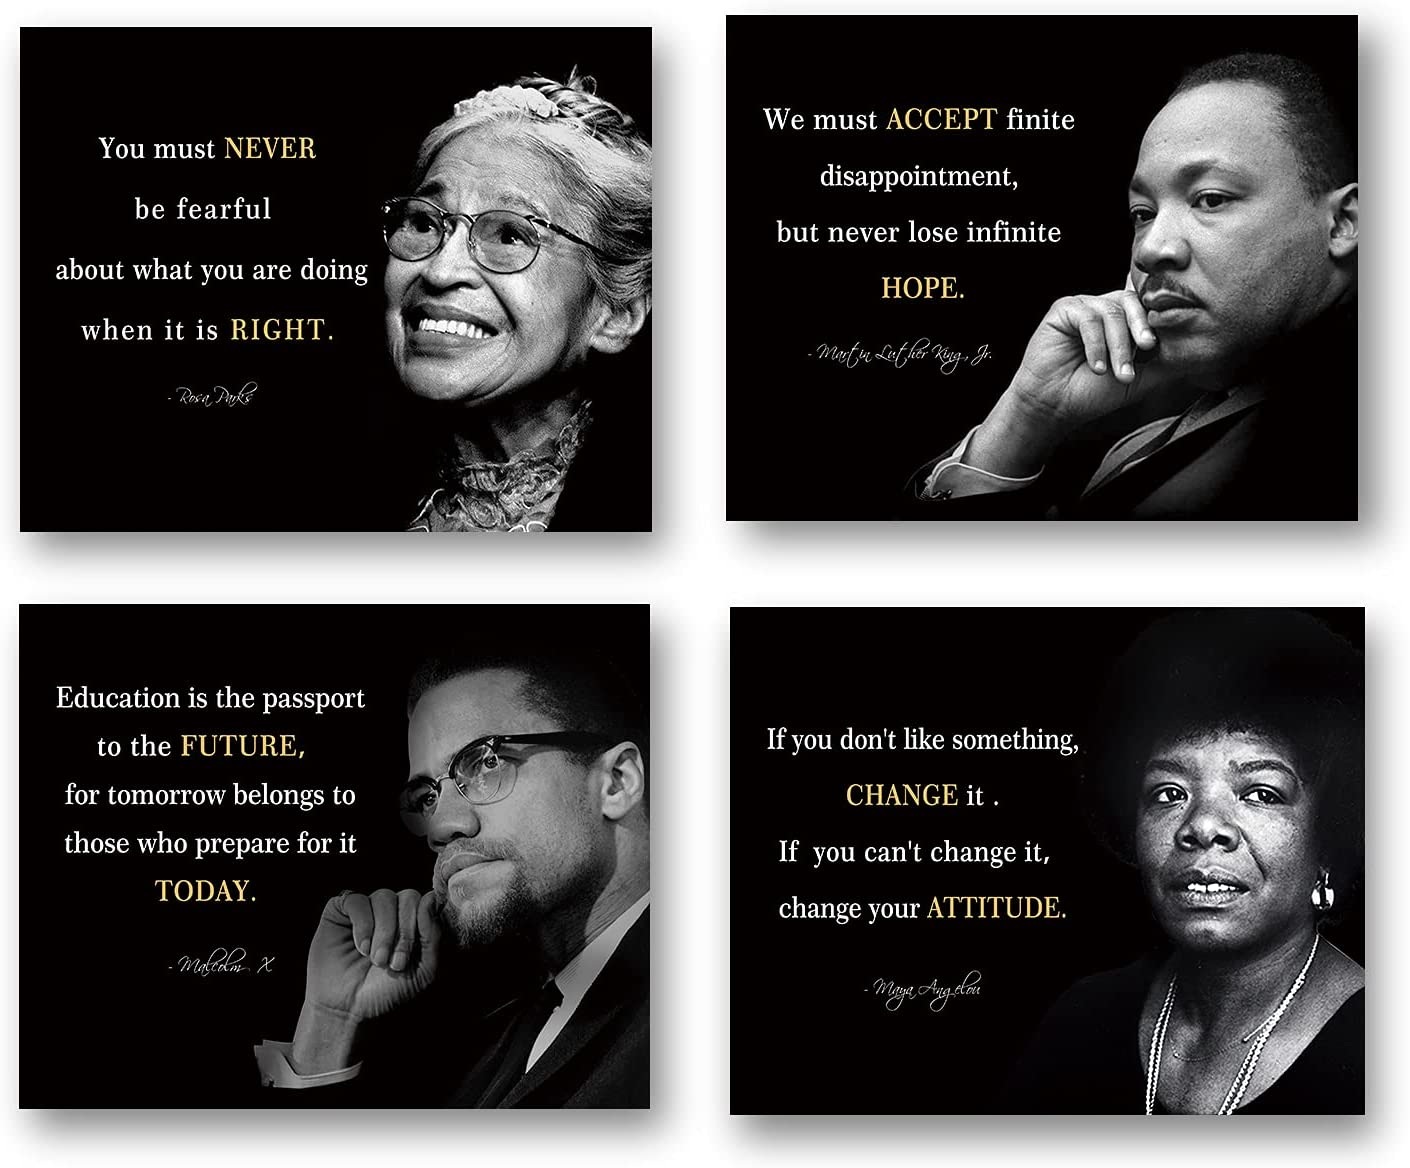 Inspiring collection of famous quotes (4 inspiring collections of famous quotes), including Martin Luther King posters, Rosa Parker, Malcolm X posters and Maya Angelou art paintings